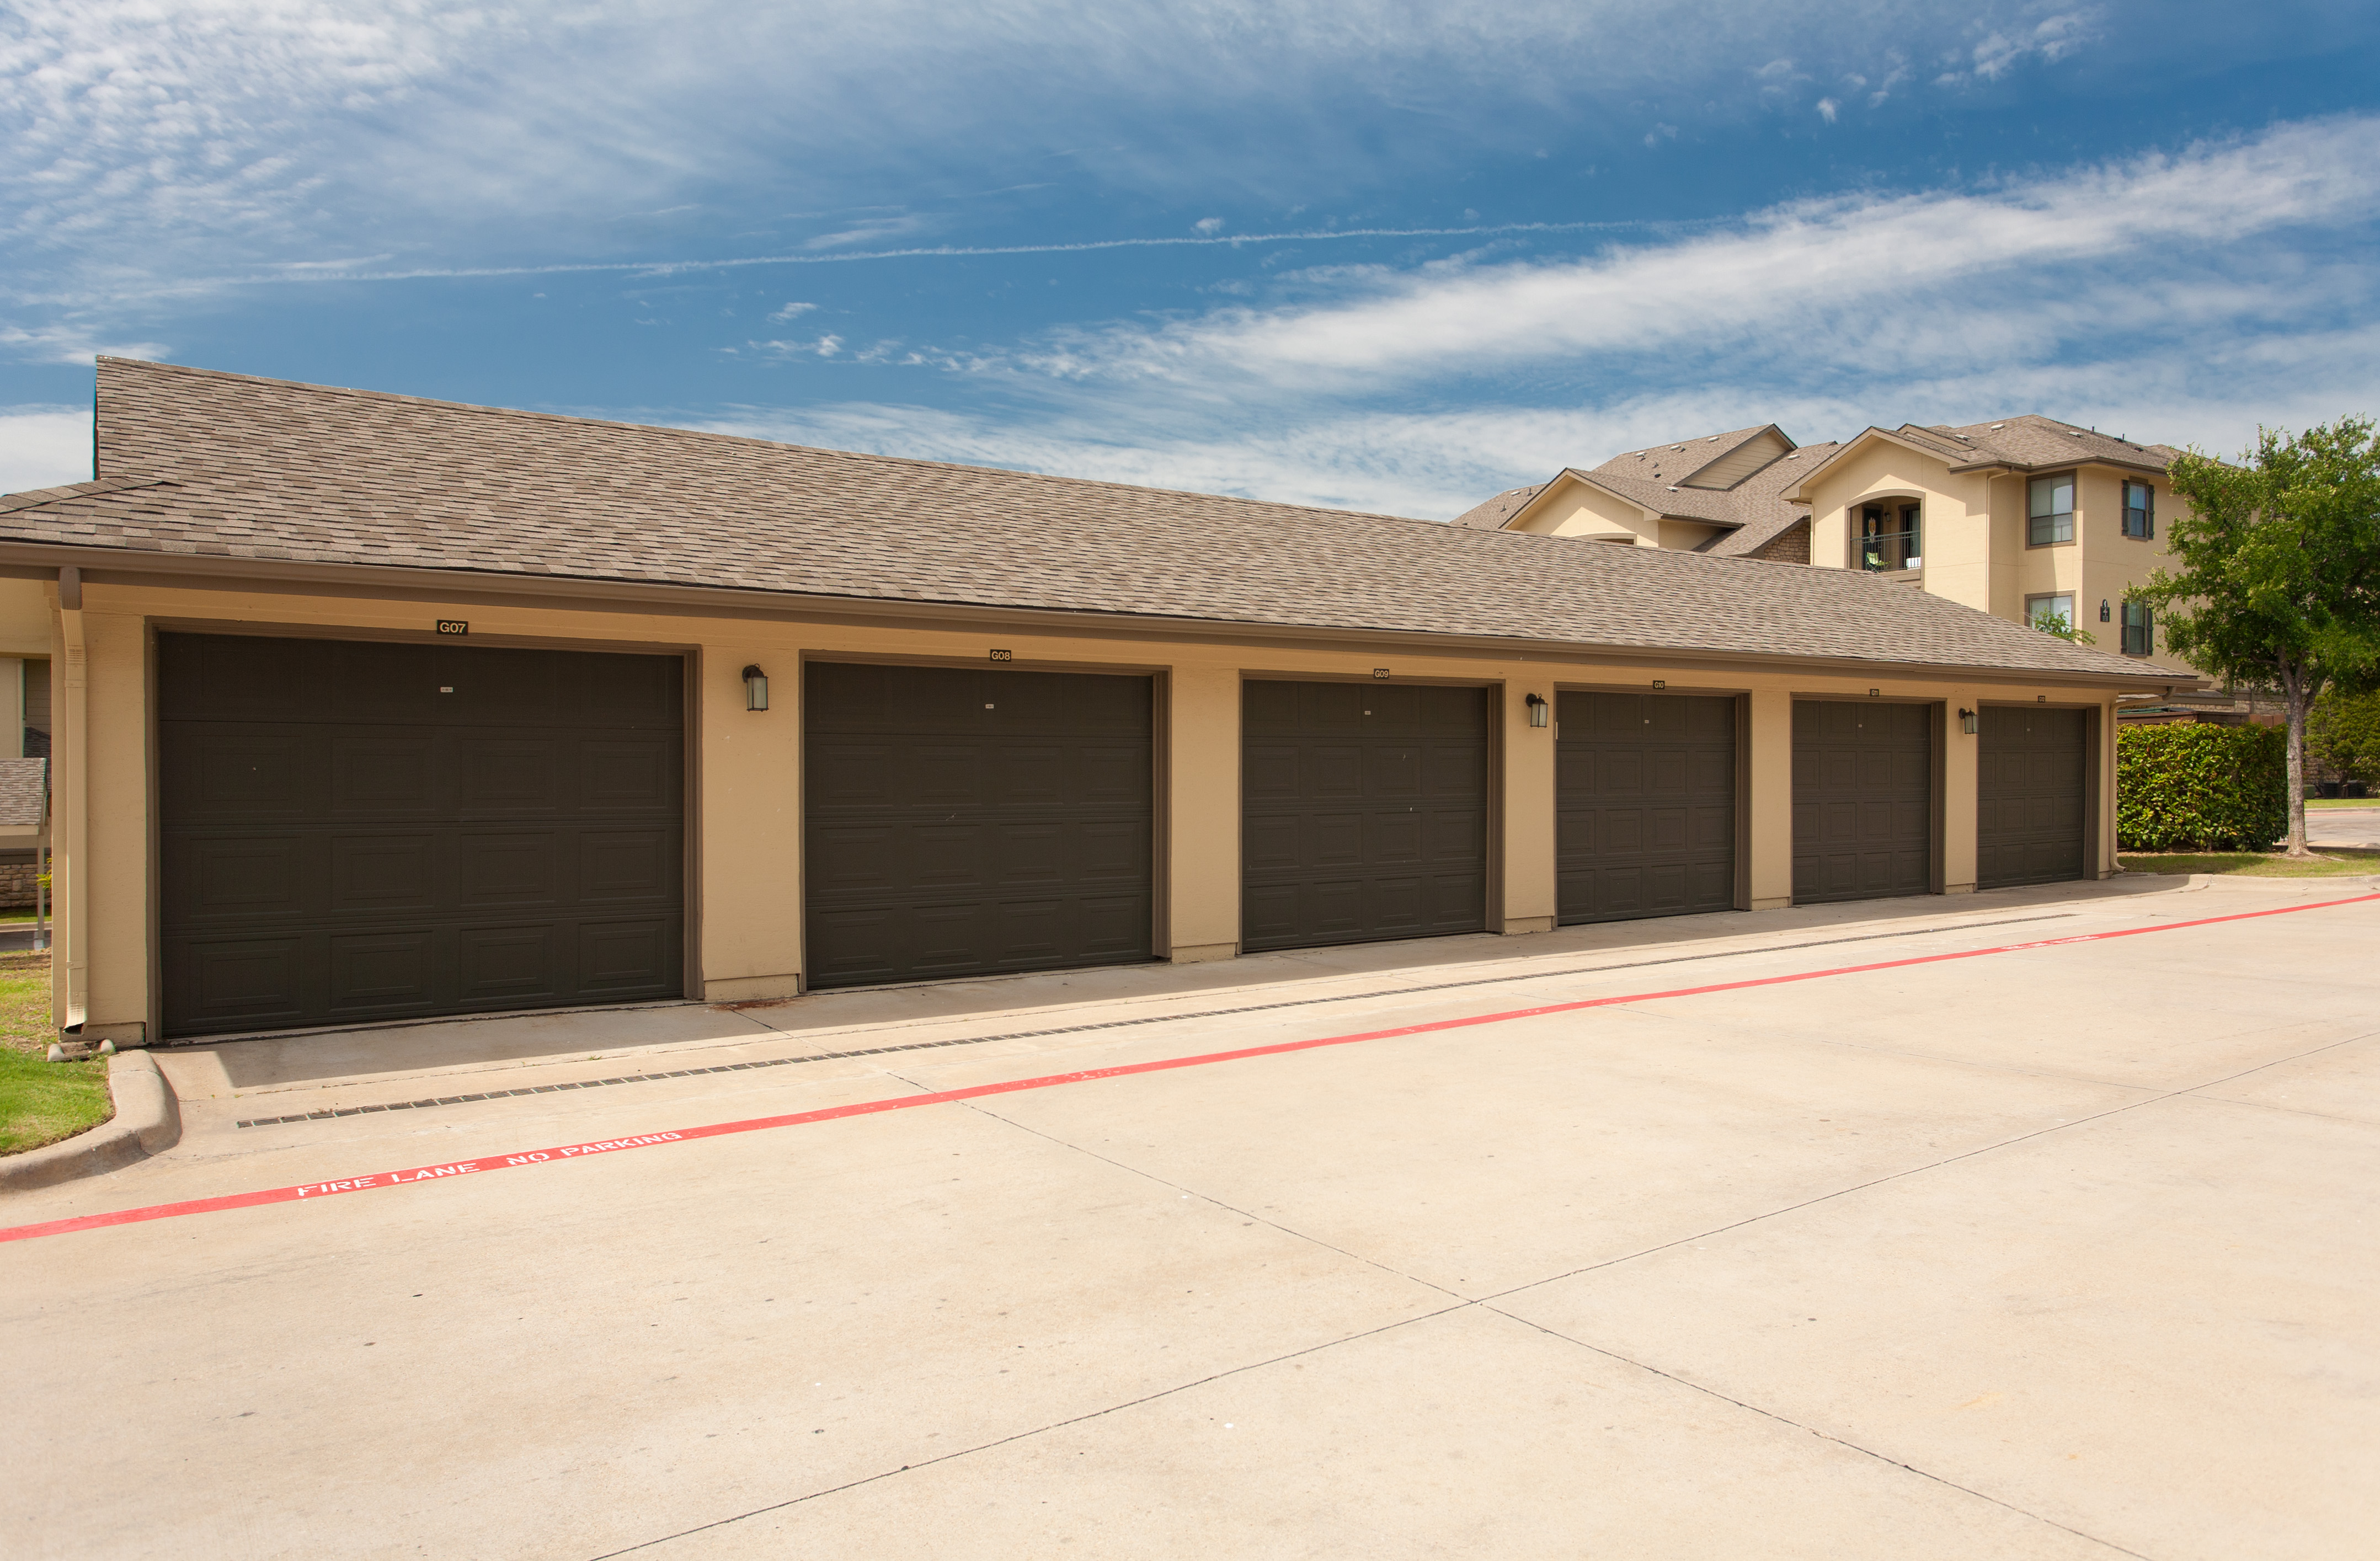 Variety of Parking Options Including Garages and Carports